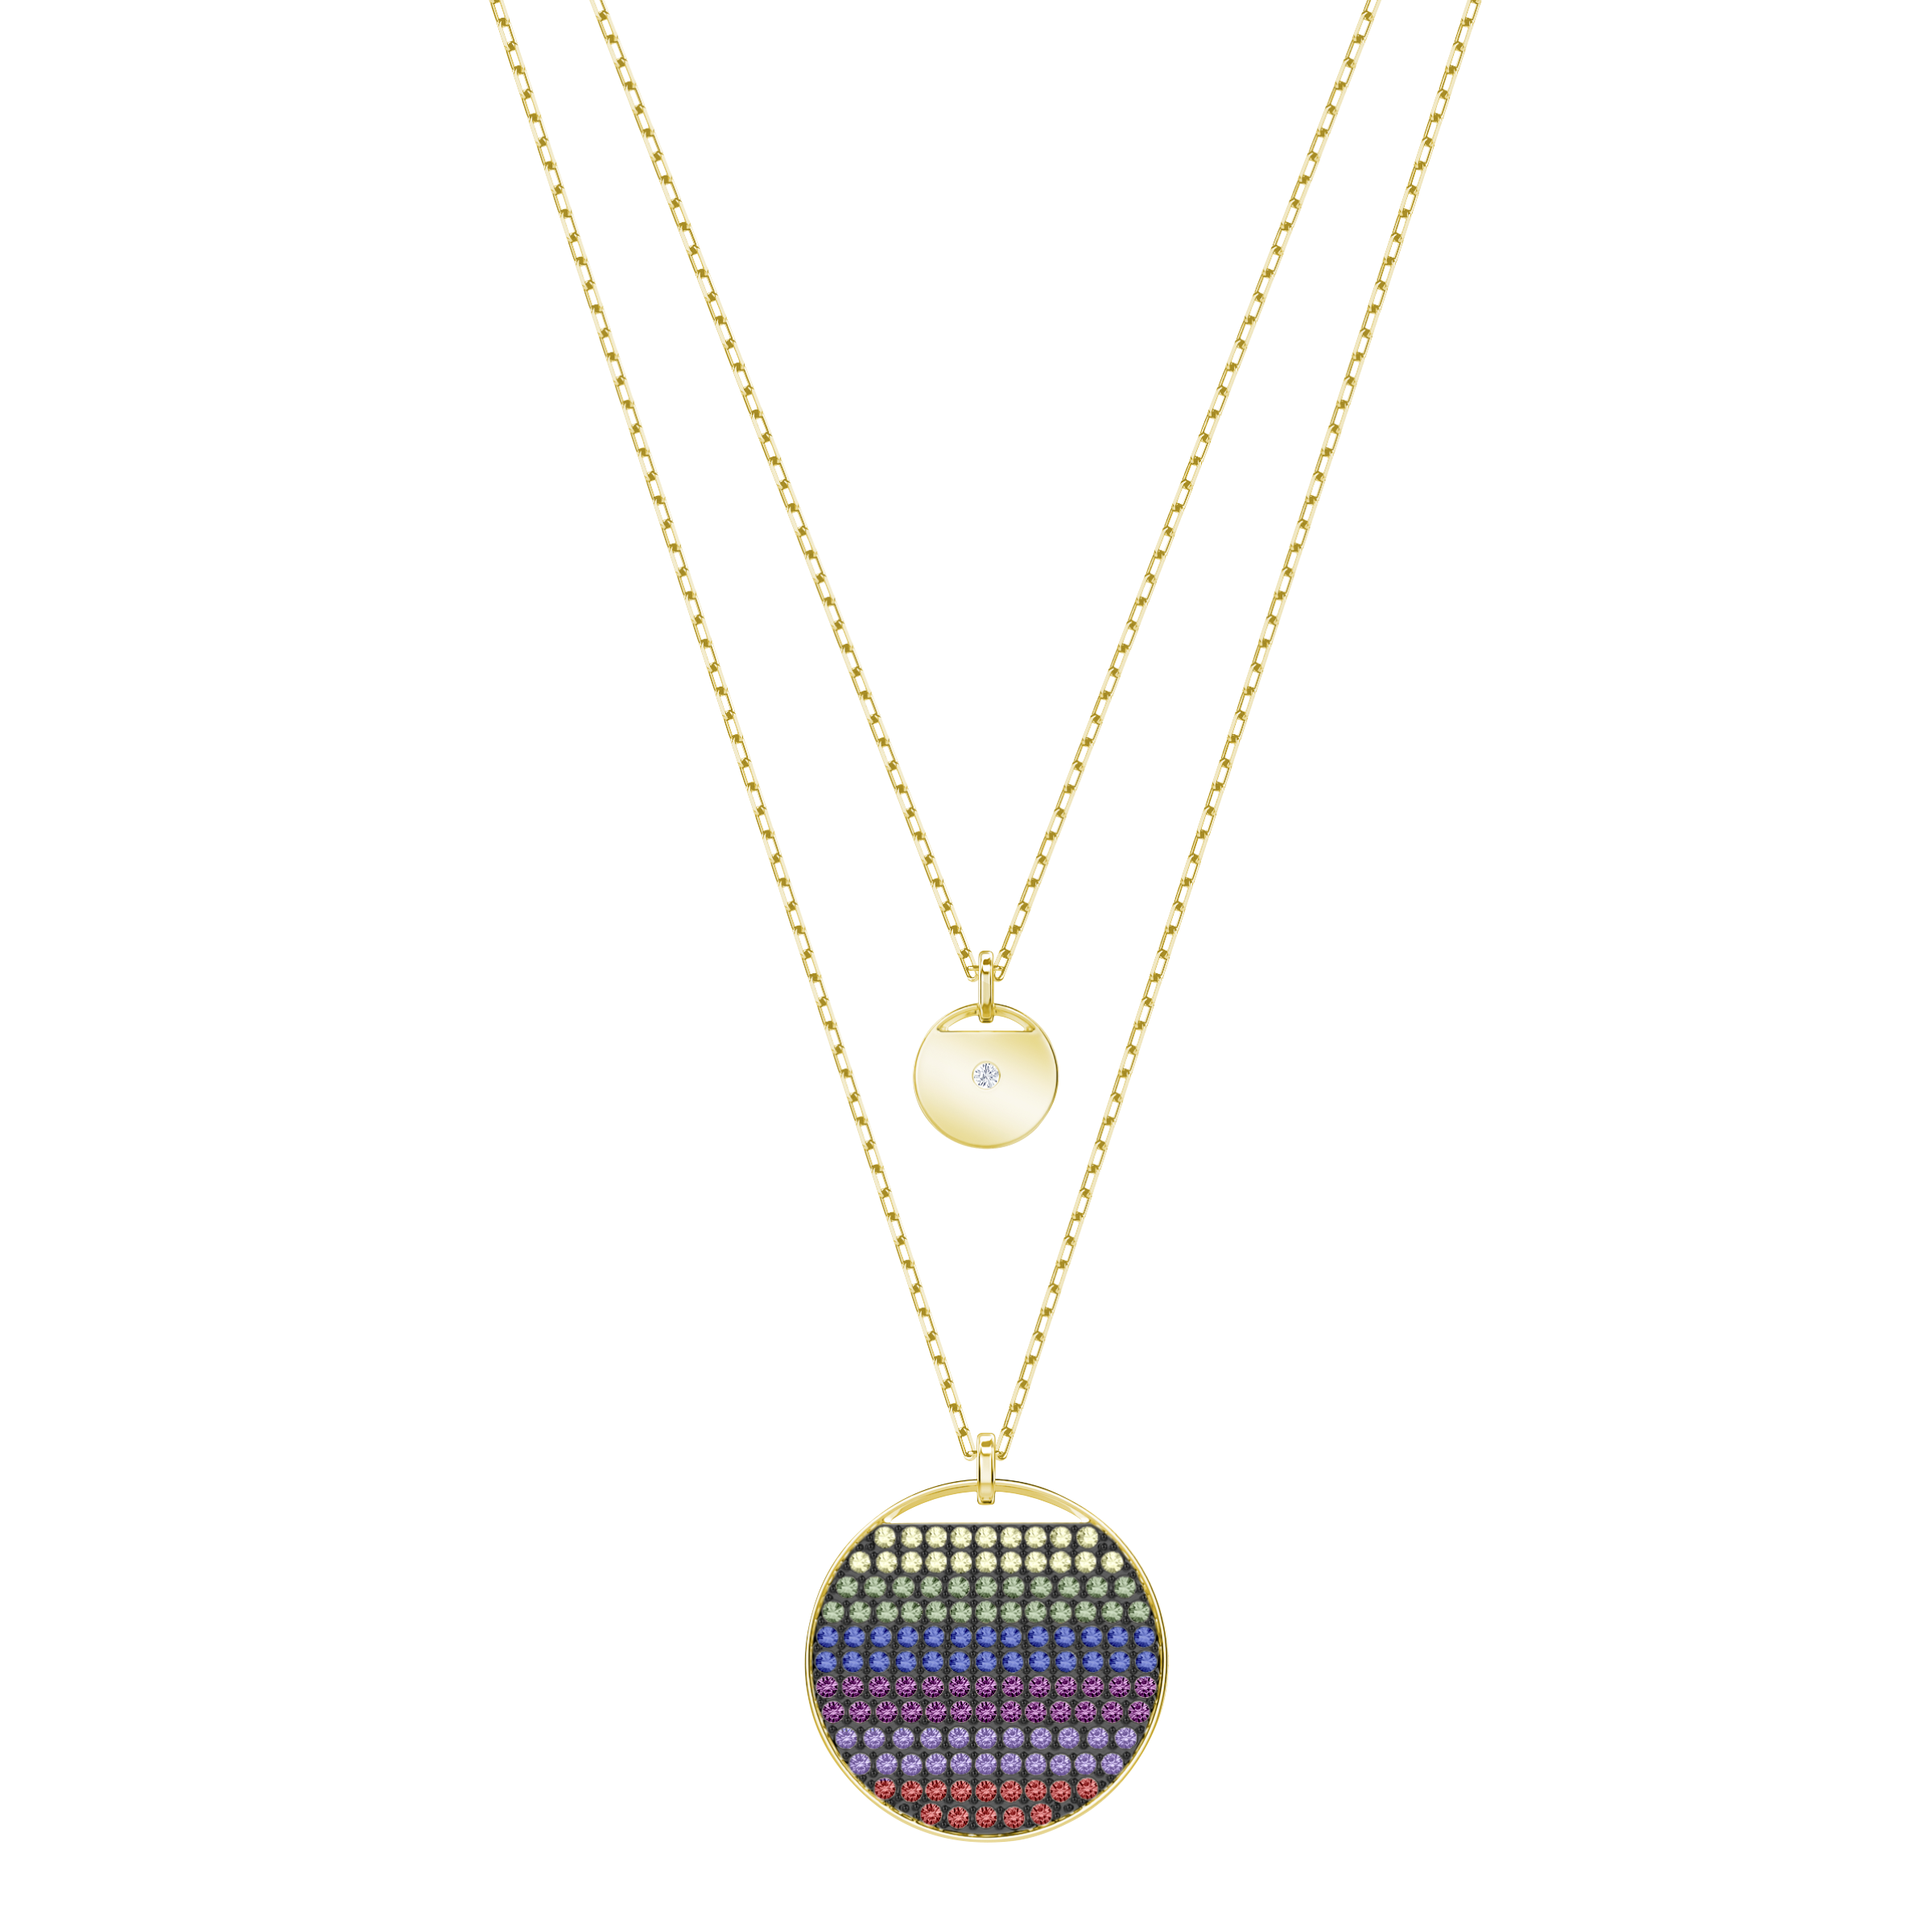 Ginger Layered Pendant, Multi-Colored, Gold Plating